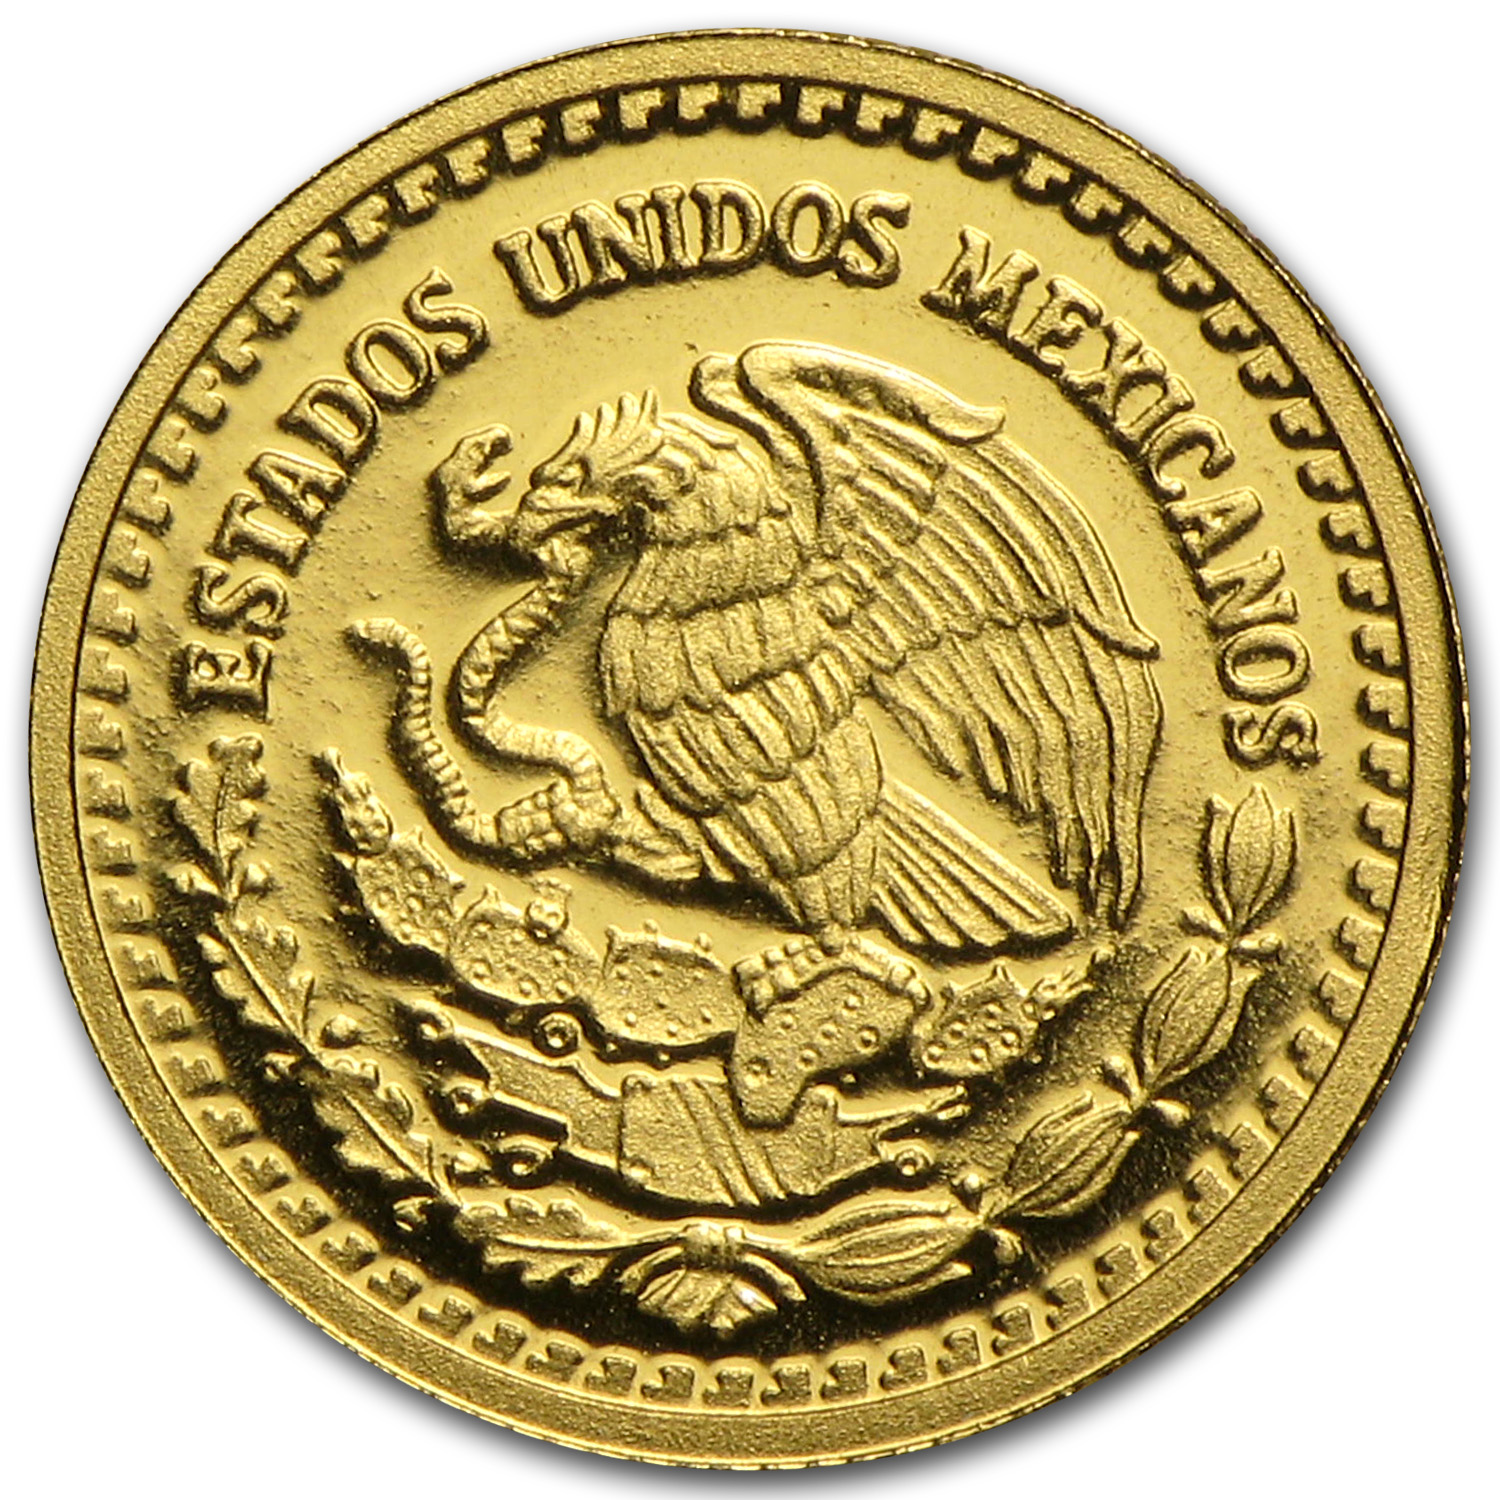 2010 1/20 oz Gold Mexican Libertad - Proof